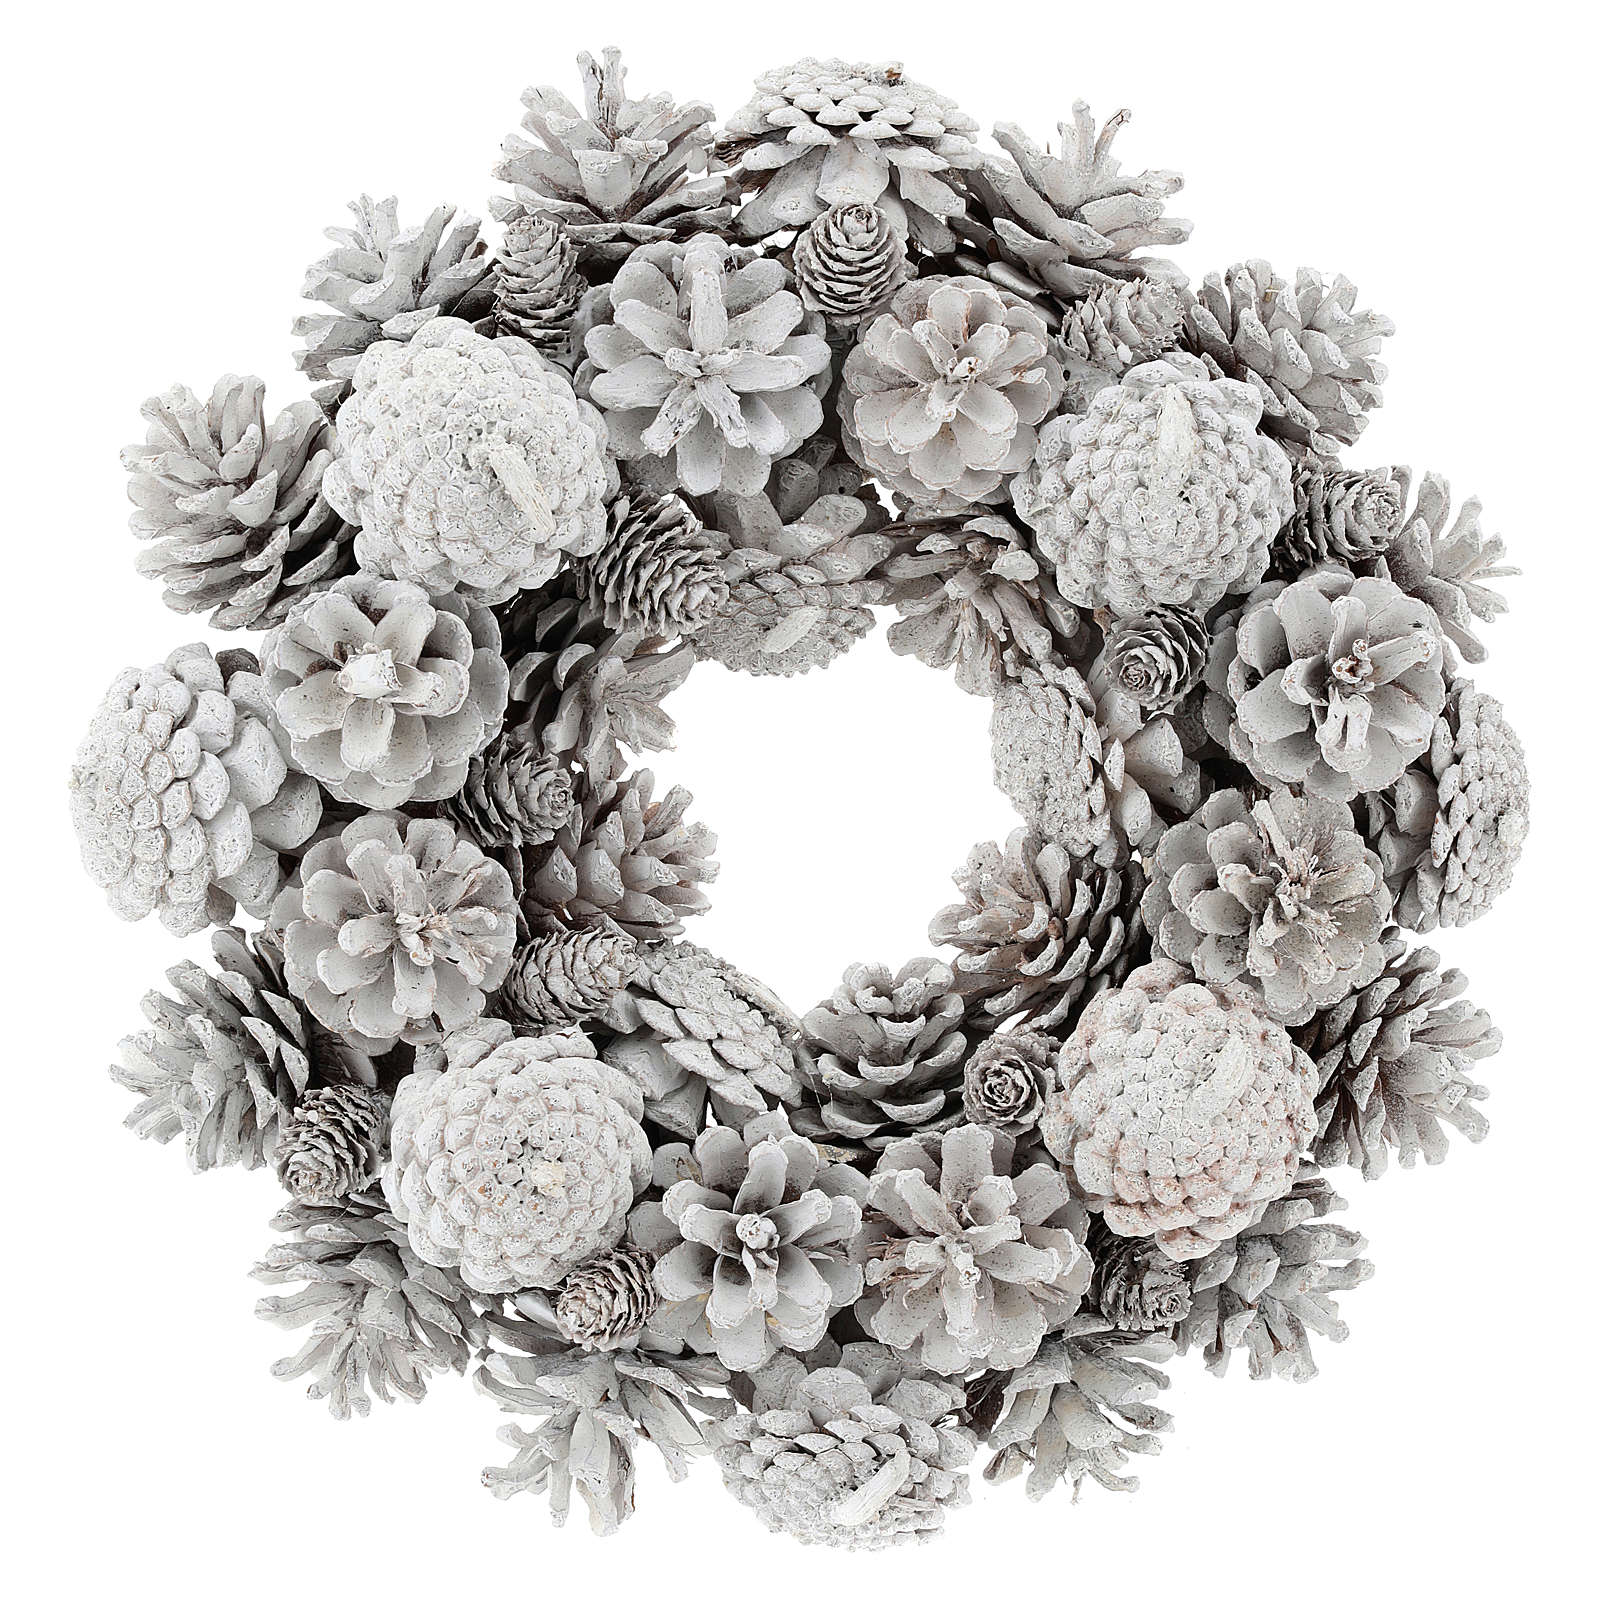 Advent wreath with white pine cones 30 cm diam 3